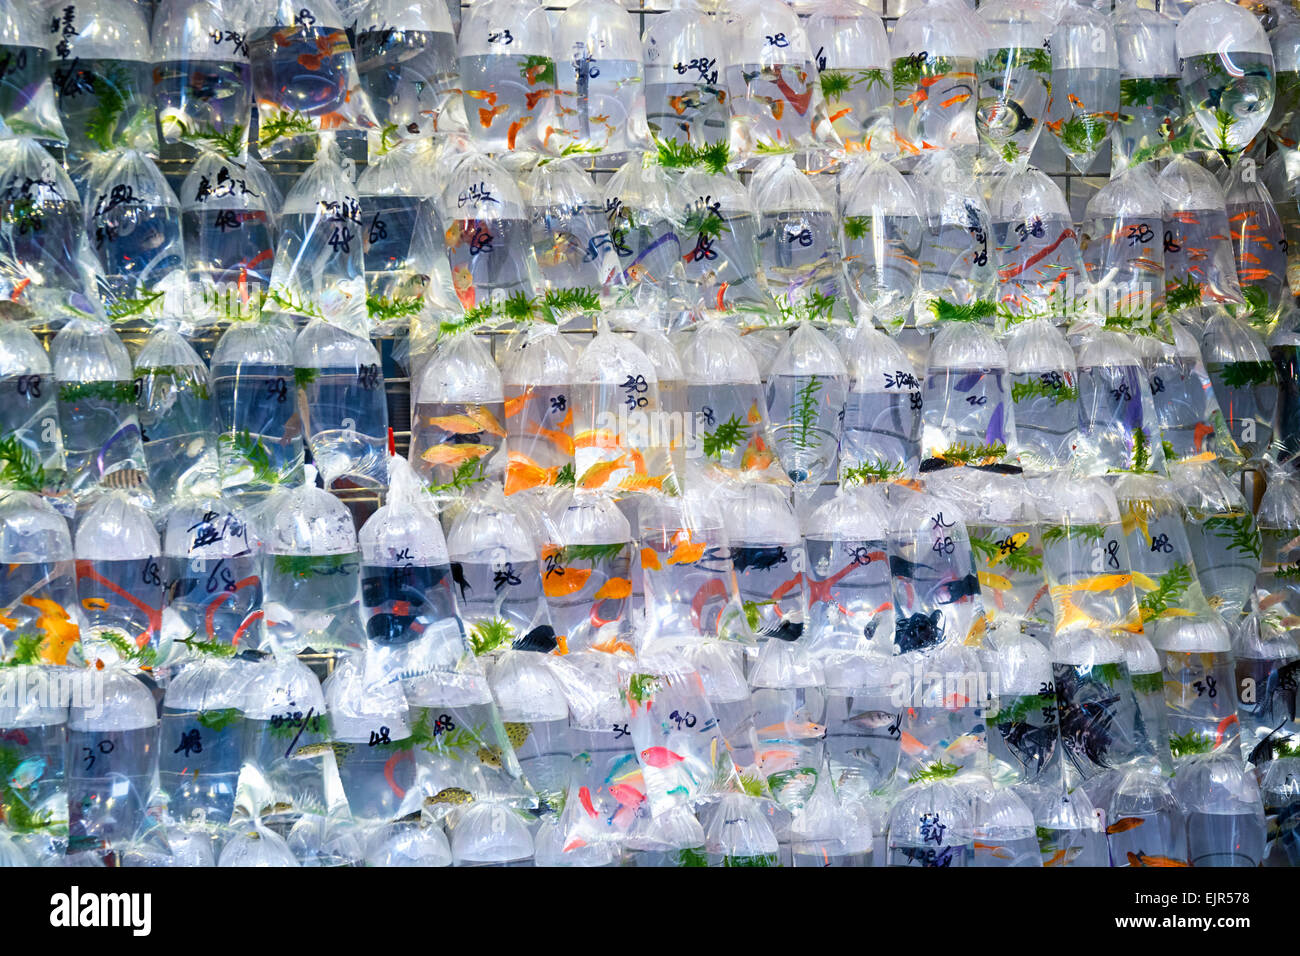 Aquarium fish displayed in plastic bags for sale in the Goldfish Stock Photo, Royalty Free Image ...